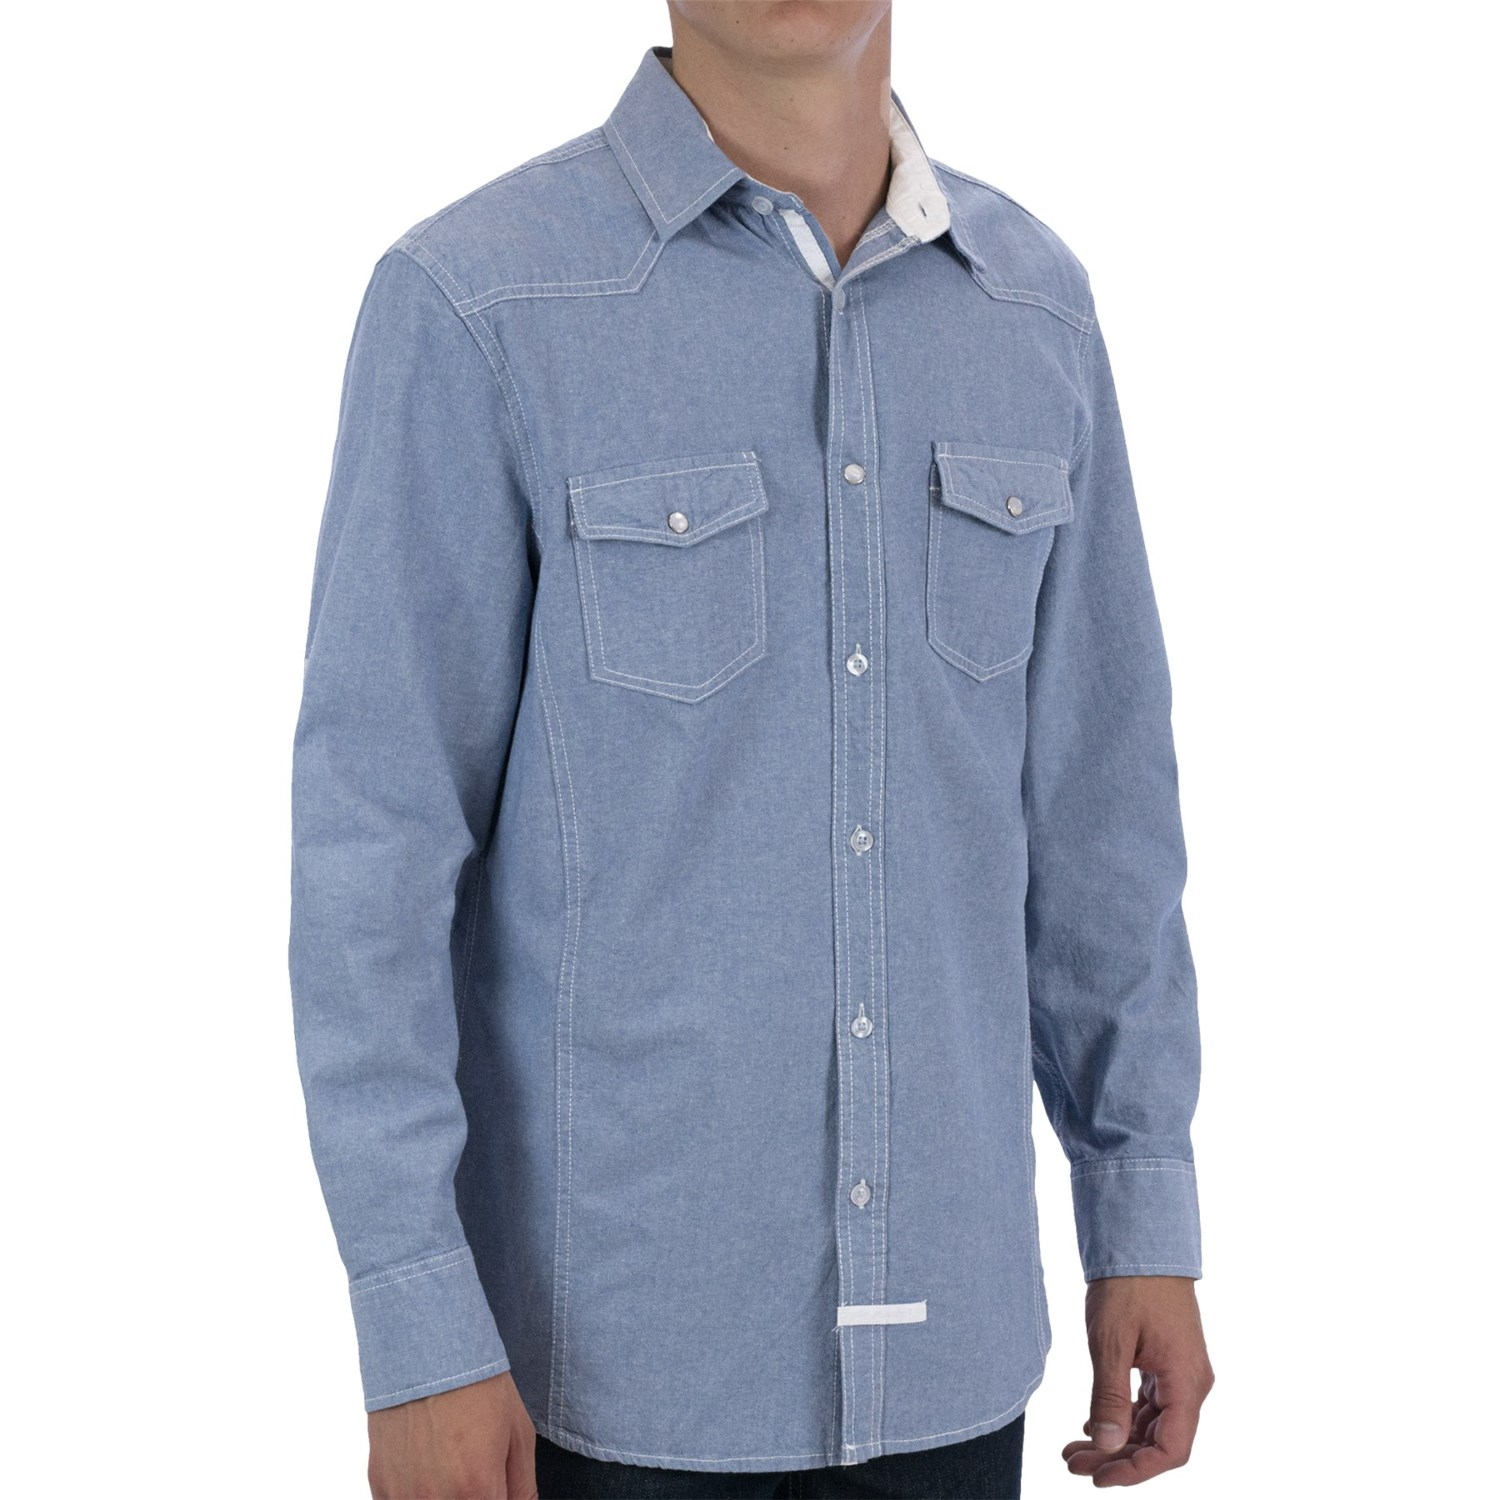 English Laundry Contrast Cuff Sport Shirt For Men 7819y